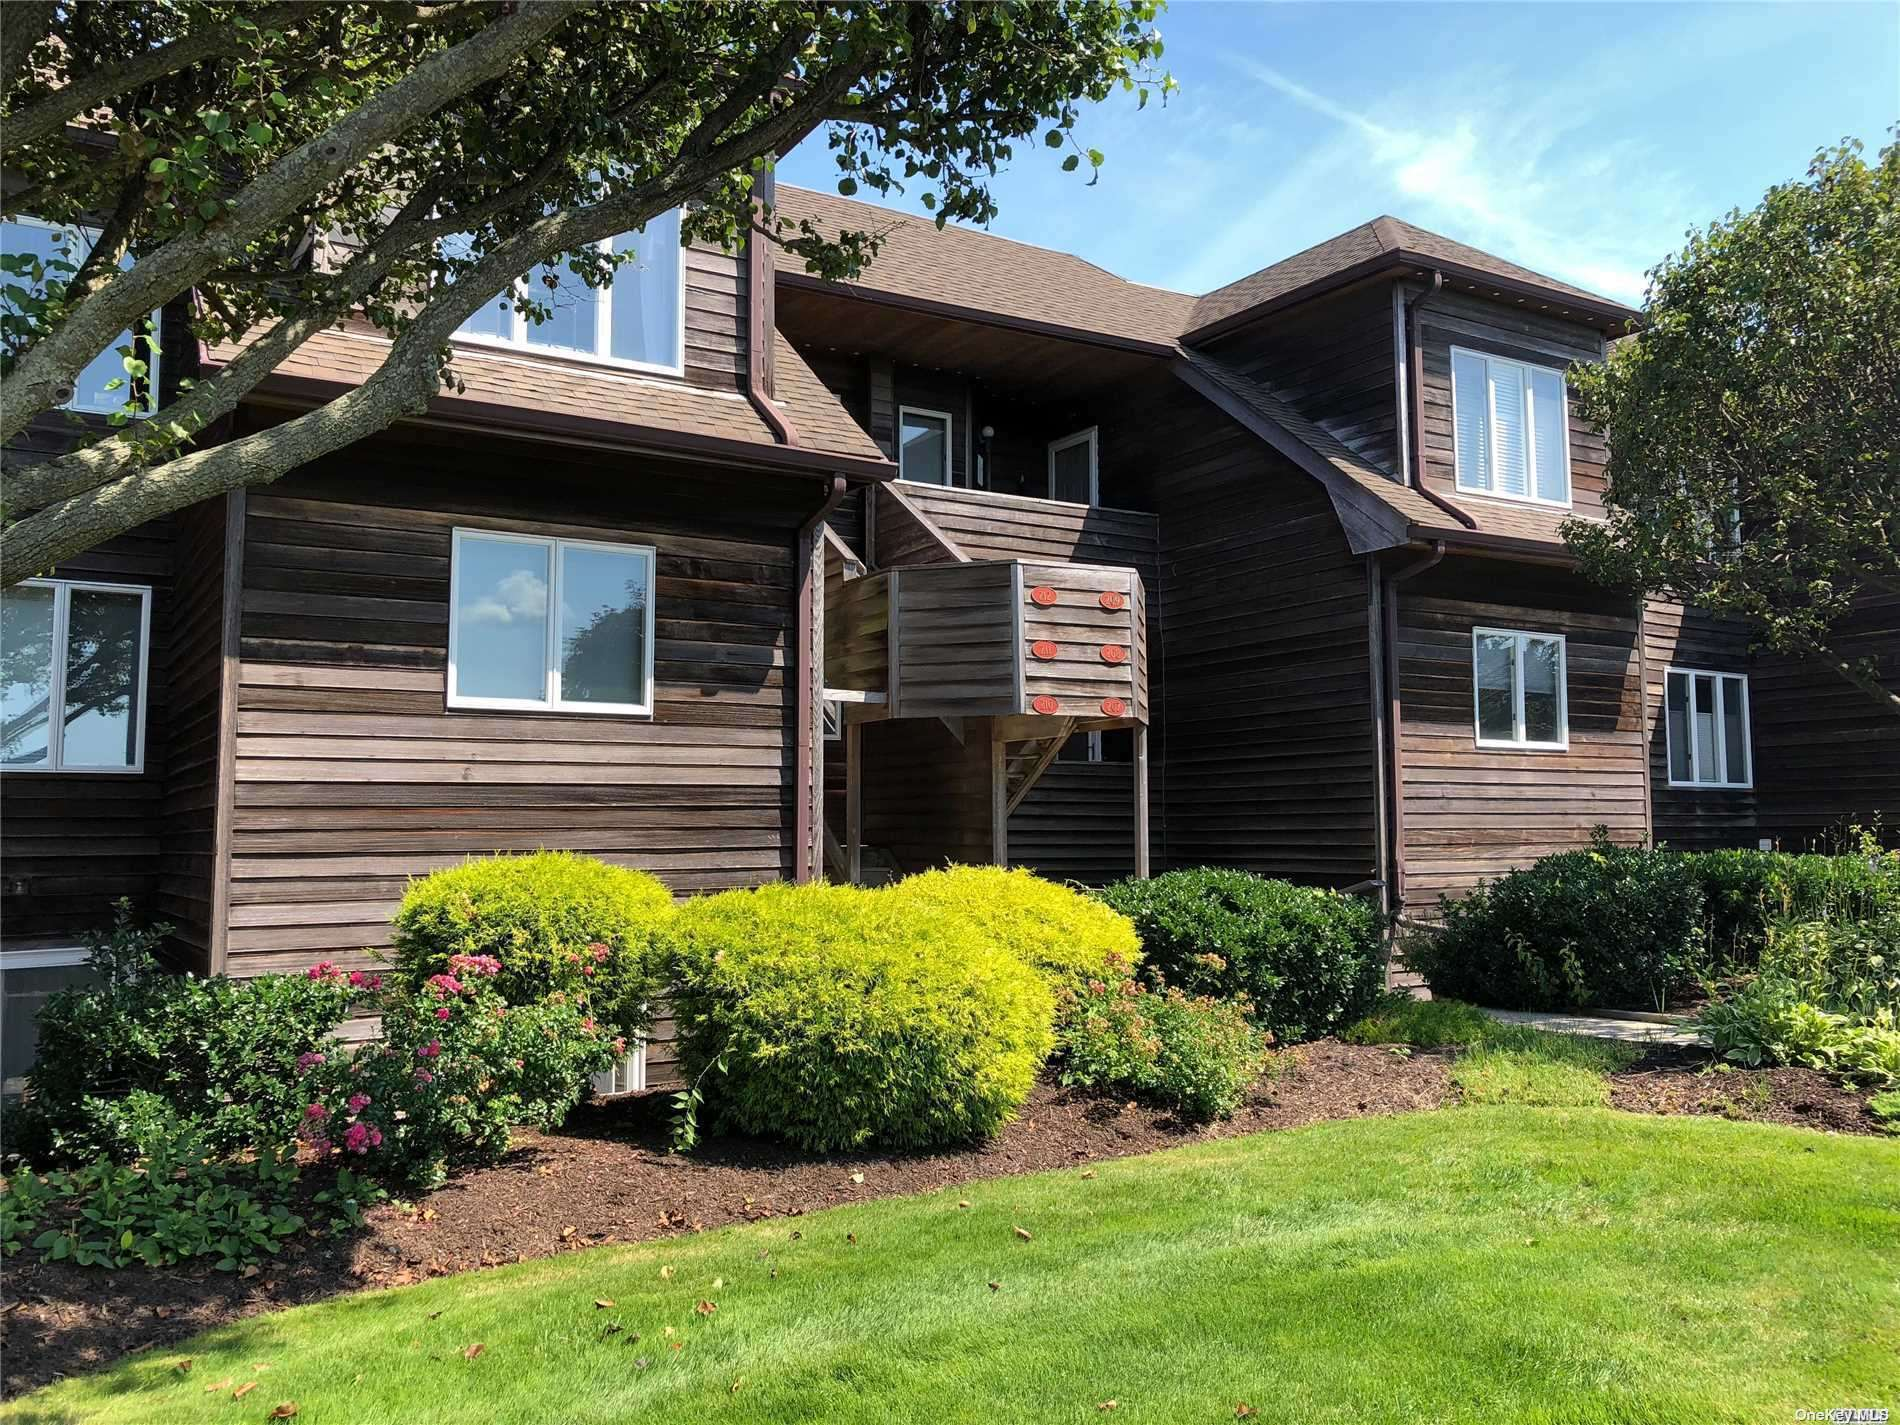 Carefree Condo Living! Spacious 2 Bedroom, 2 Bath Condo In Sound Front Community. Serene Views Of Long Island Sound. Sun Filled Living Room With Wood Burning Fireplace And Sliders That Open To A Huge Deck. Resort Style Amenities Inc Pool, Pickleball, 3 Tennis Courts, Clubhouse, Workout Room, & Beach Access, Adjacent To World Class Golf. Convenient To Shops, Dining, & The Best Of The North Fork Wine Country! 90 Min Nyc!